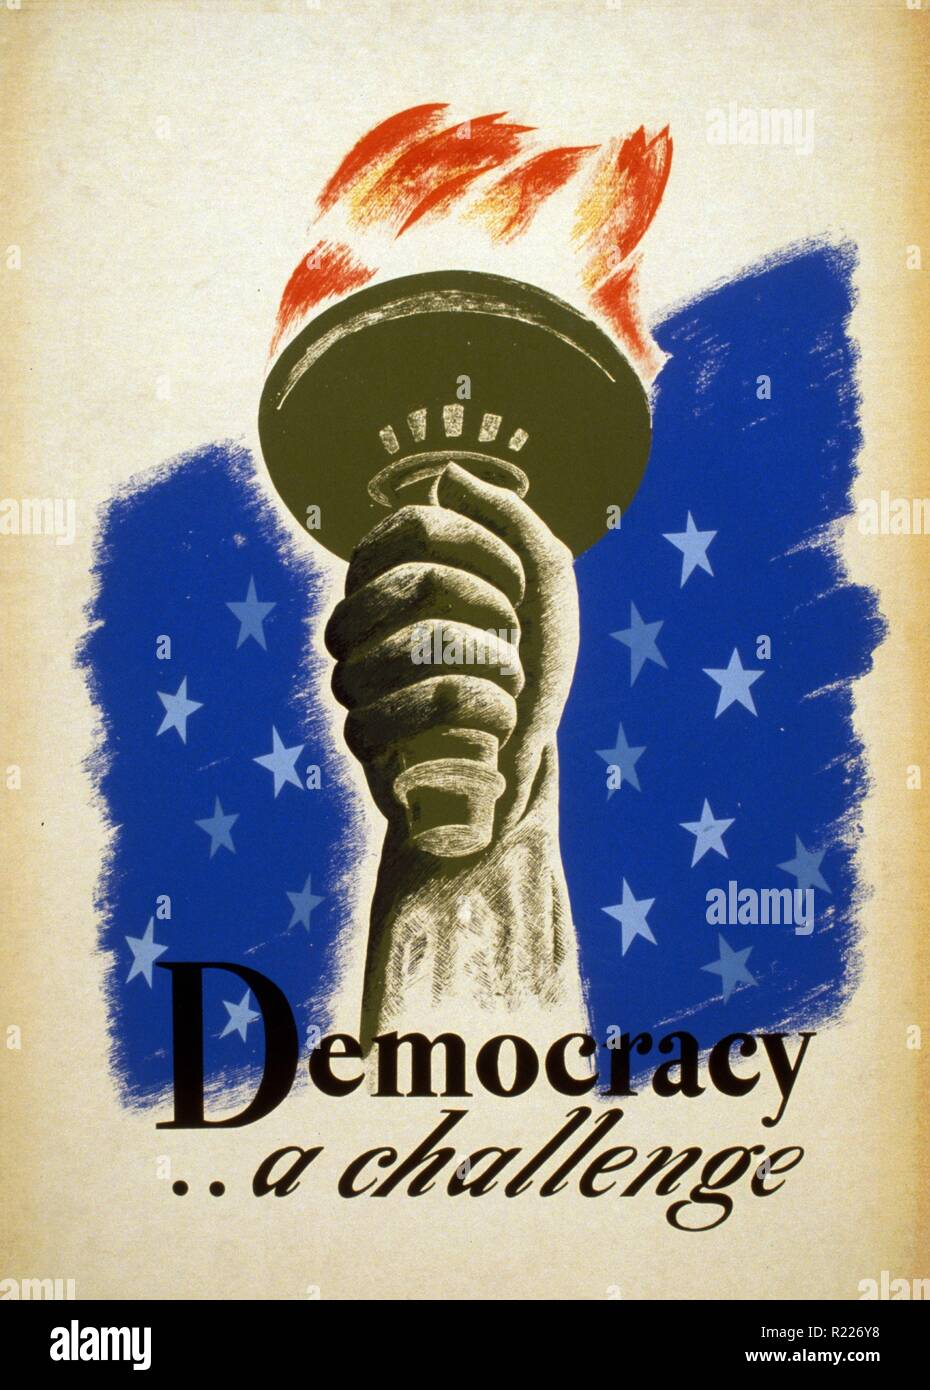 Democracy .. a challenge. 1940 Poster for democracy showing the hand and torch of the Statue of Liberty. Federal Art Project - Stock Image